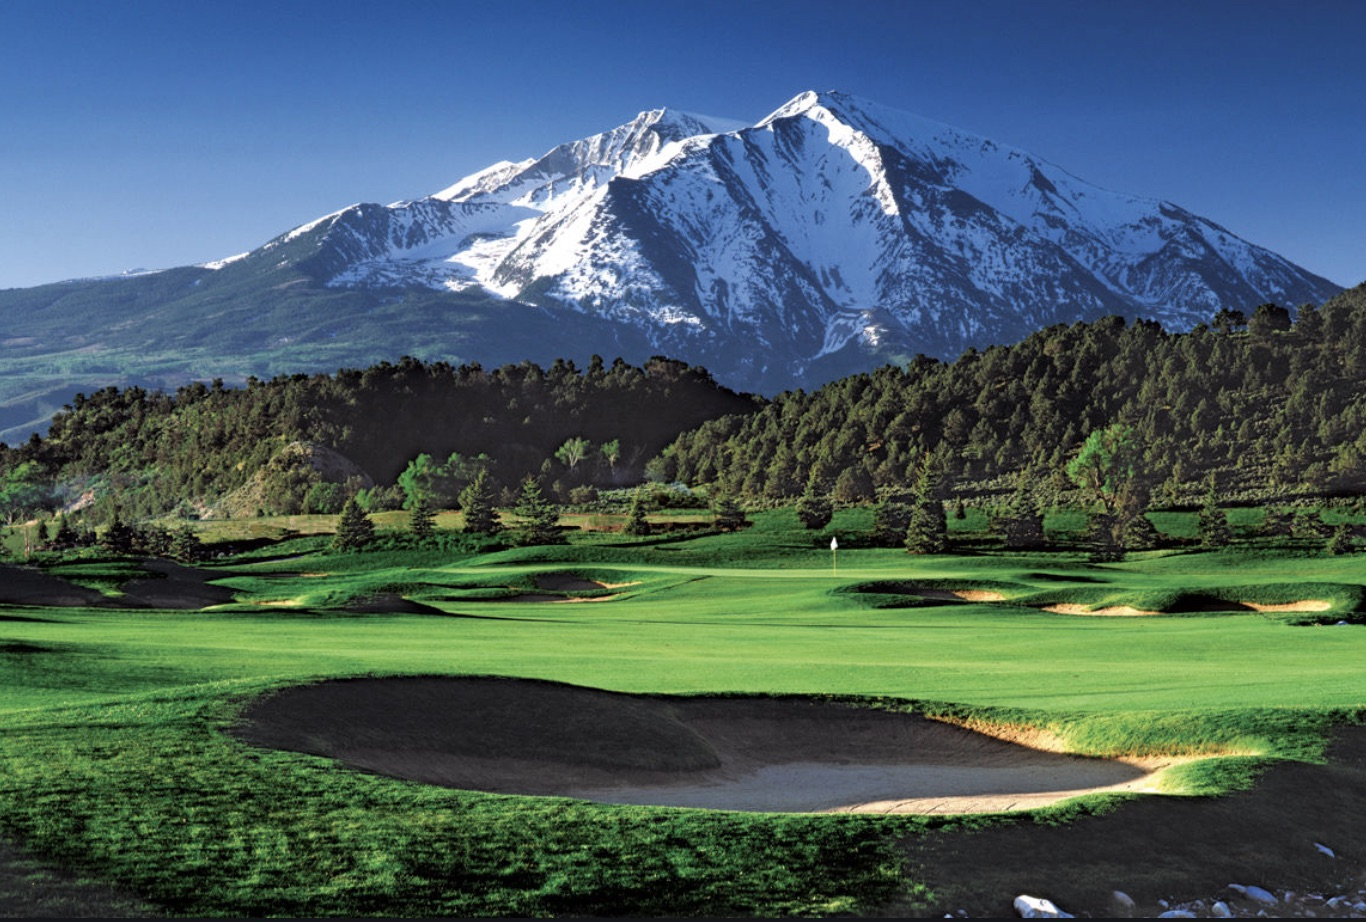 Aspen Glen Golf Course